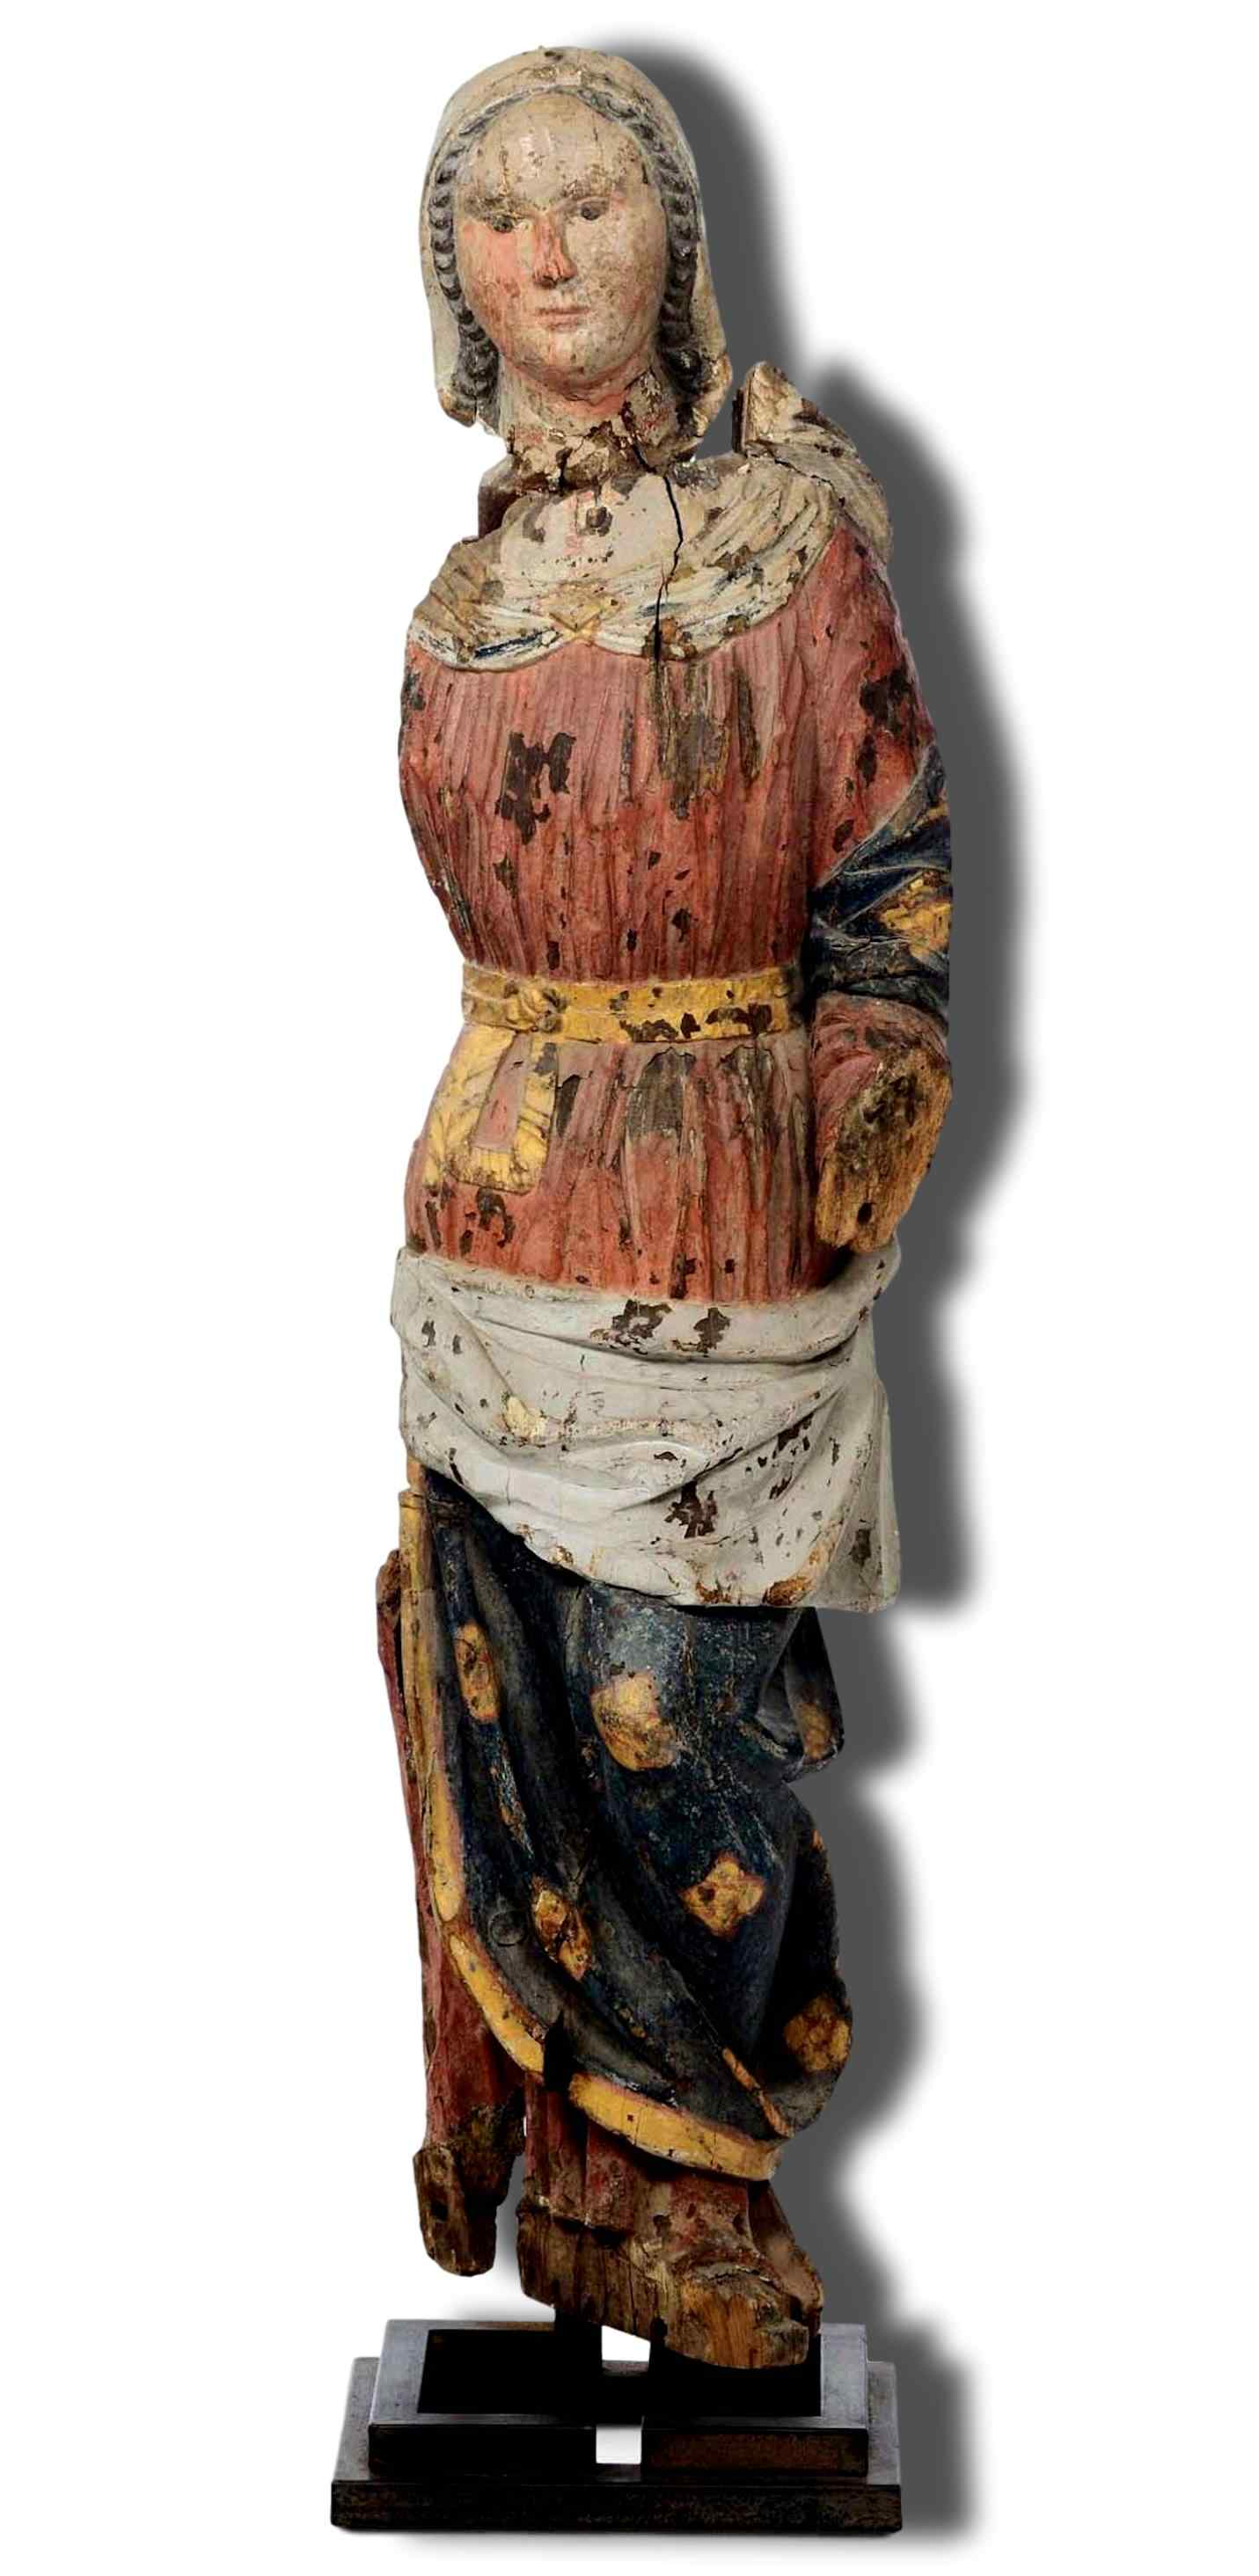 Wooden sculpture, Madonna, Umbrian-Abruzzese school, 14th ce